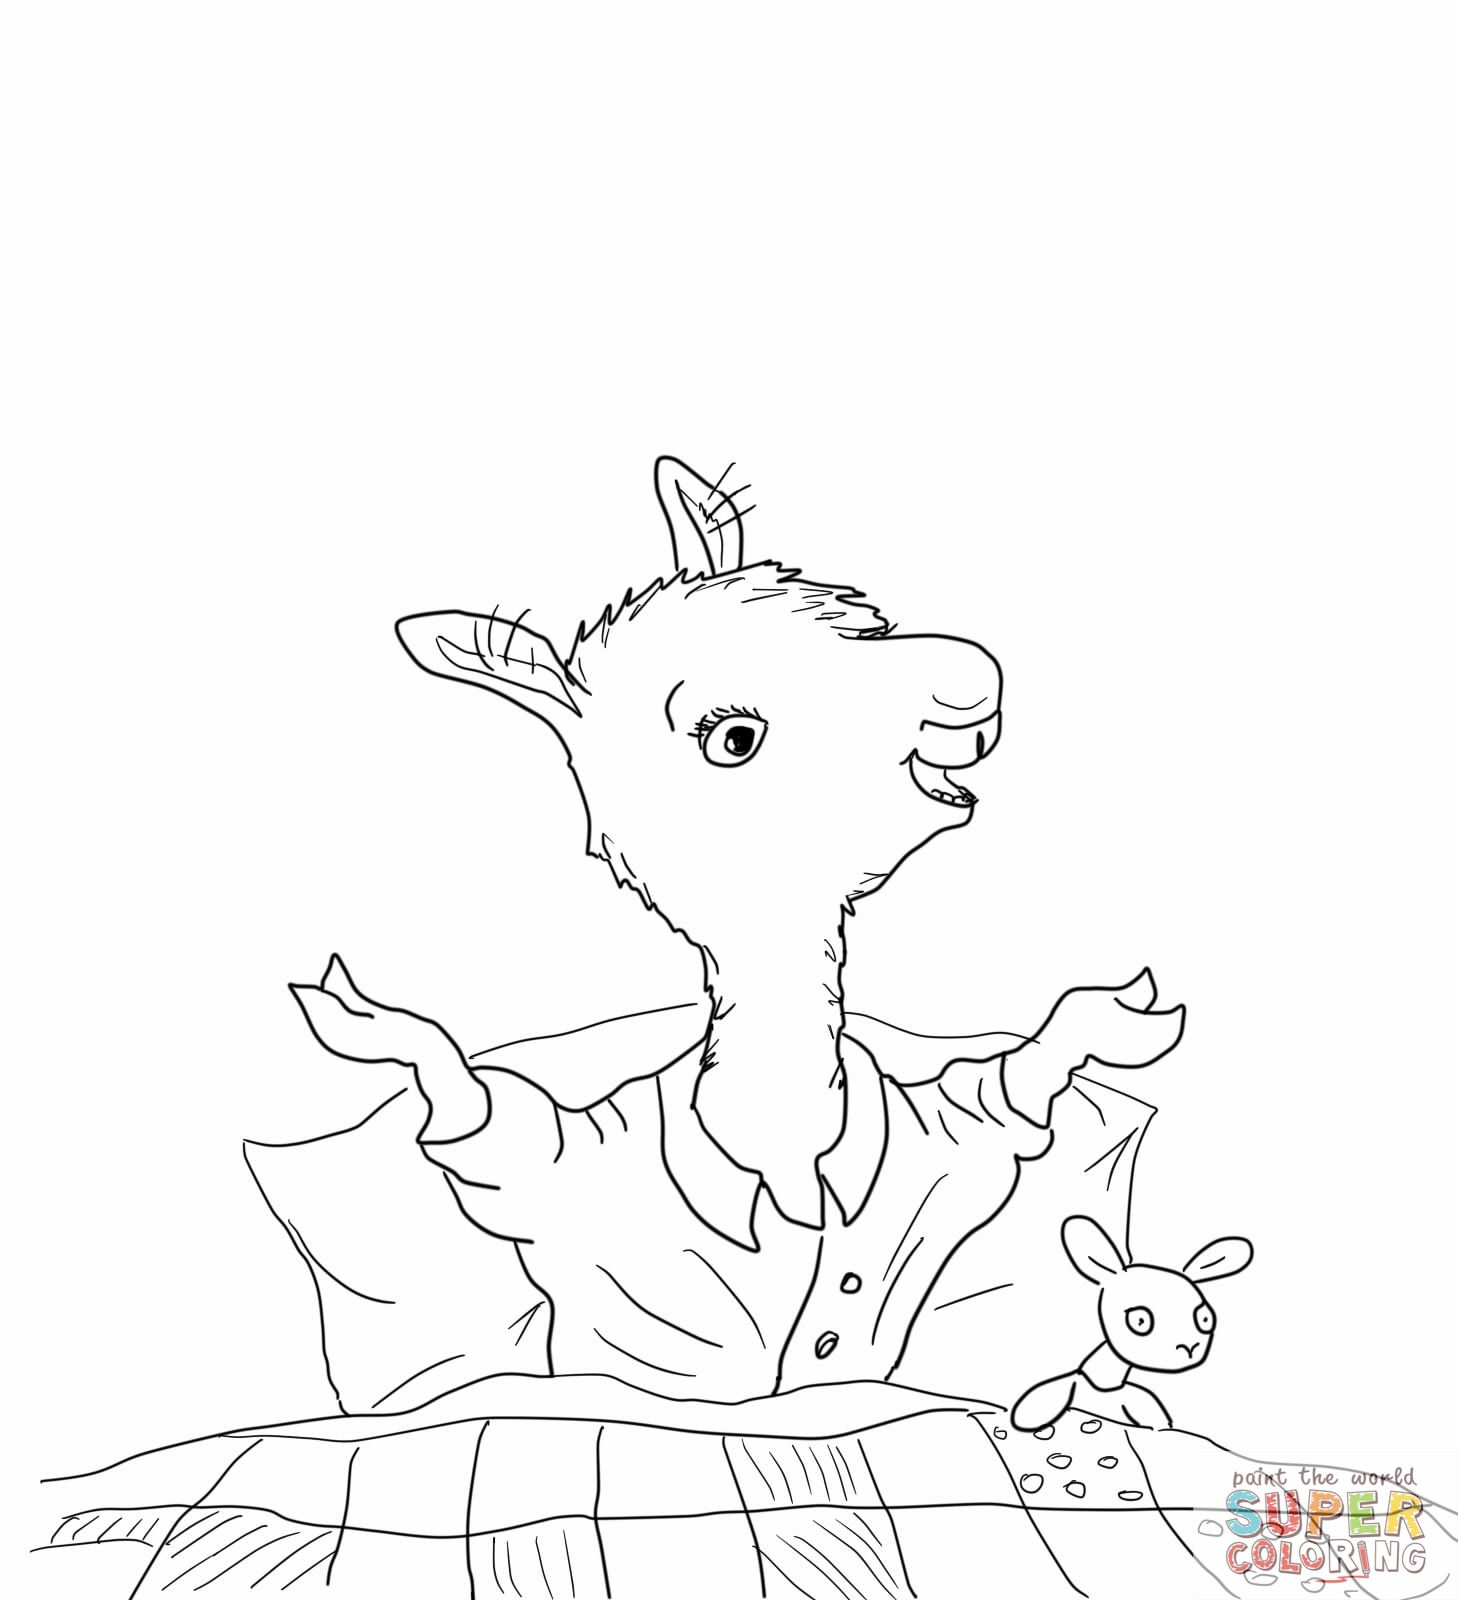 Llama Llama Home With Mama Coloring Page Jpg 1458 1600 Animal